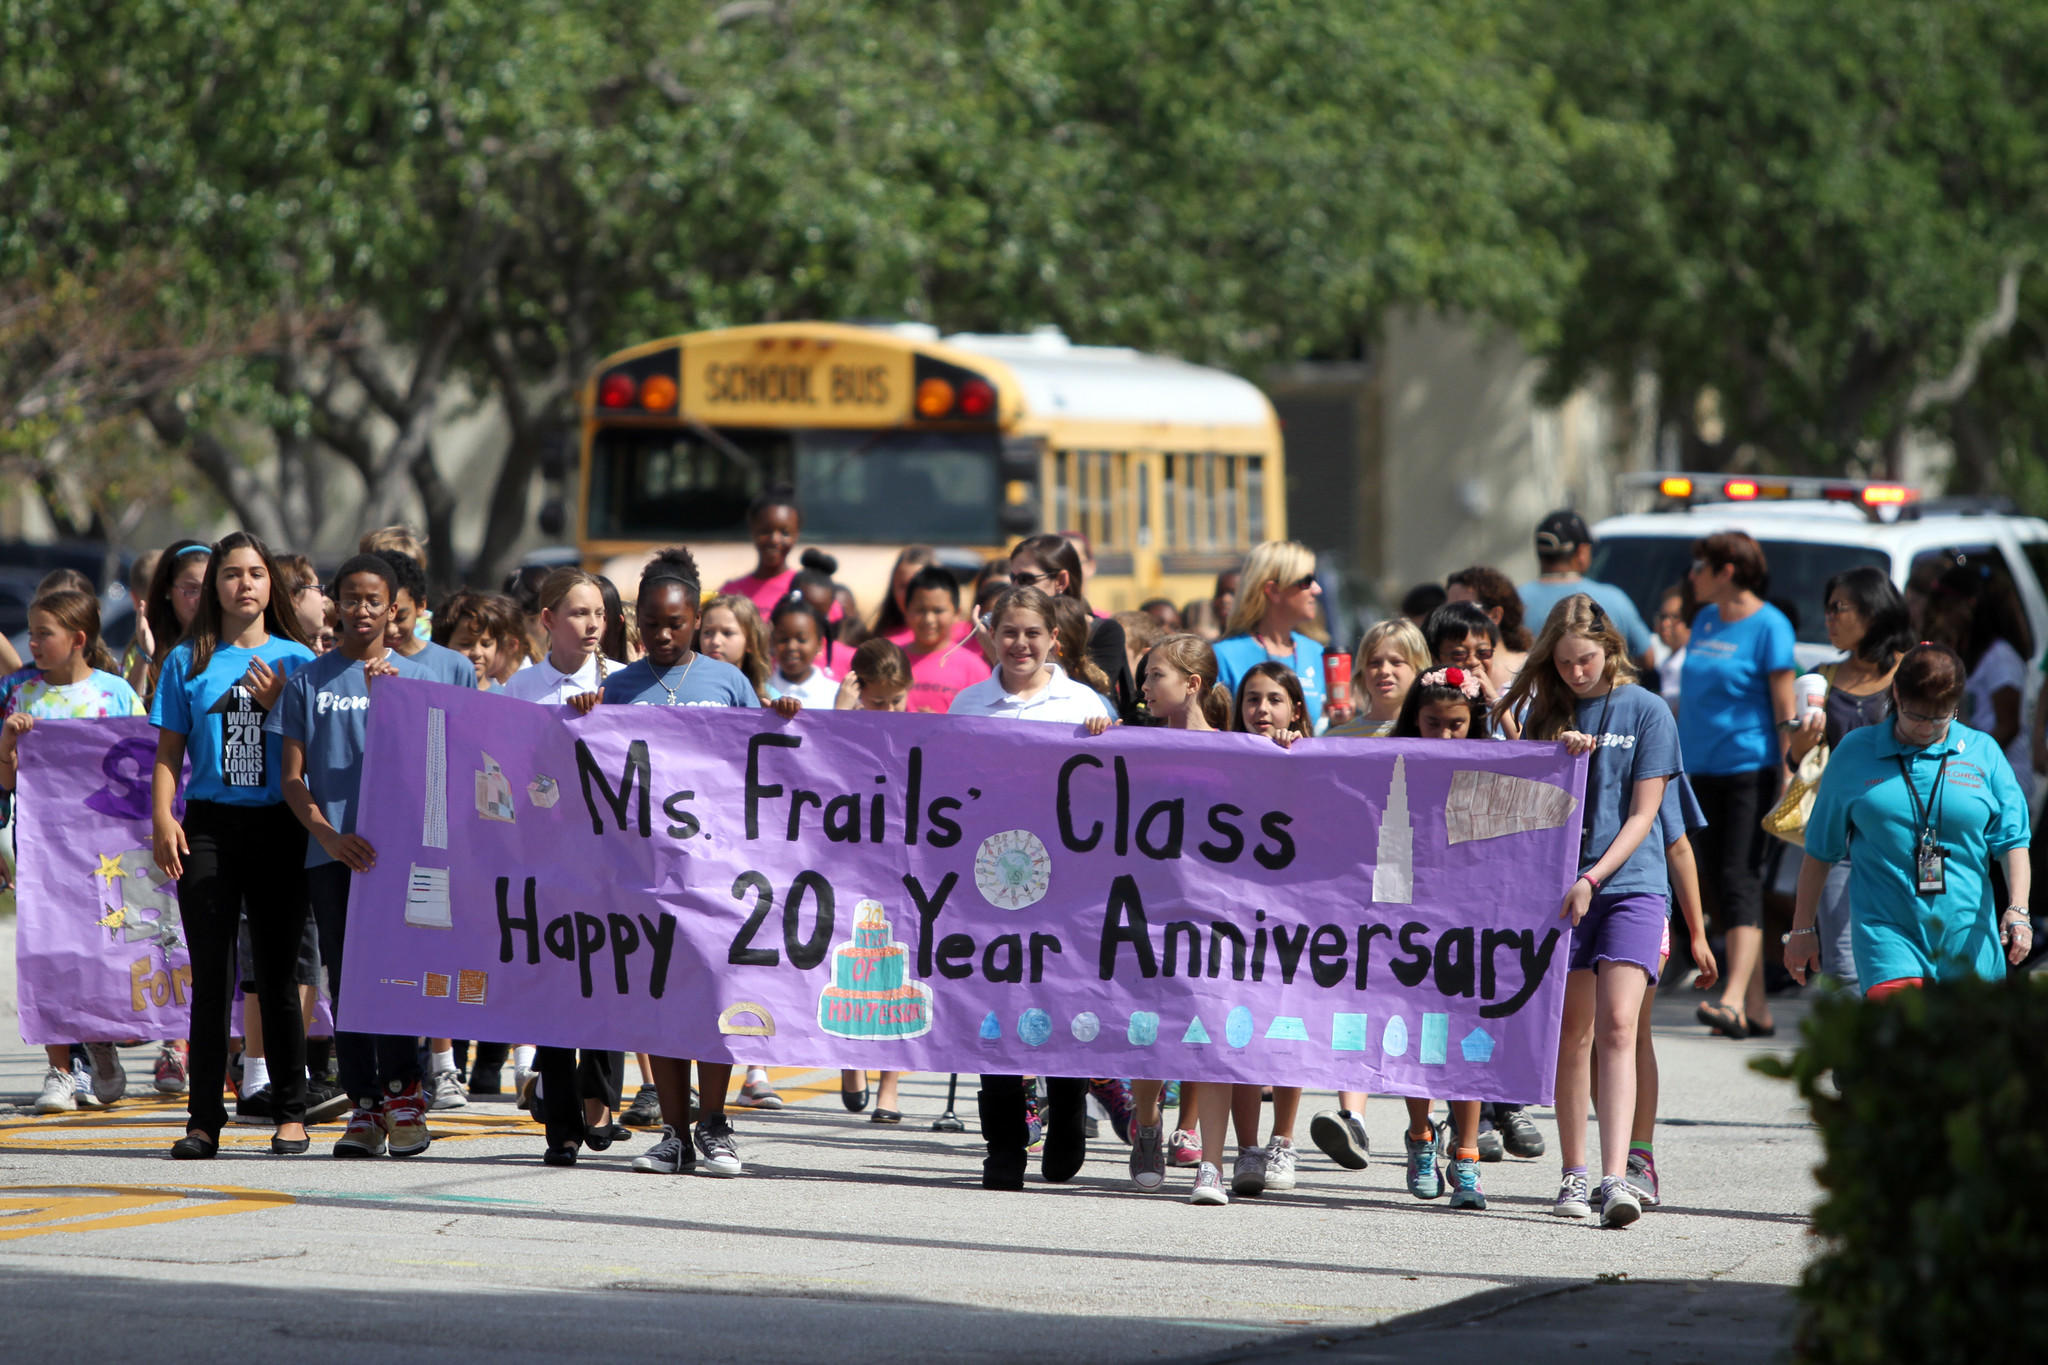 Students march in a parade for Virginia Shuman Young's 20th anniversary celebration on Friday, April 11, 2014.